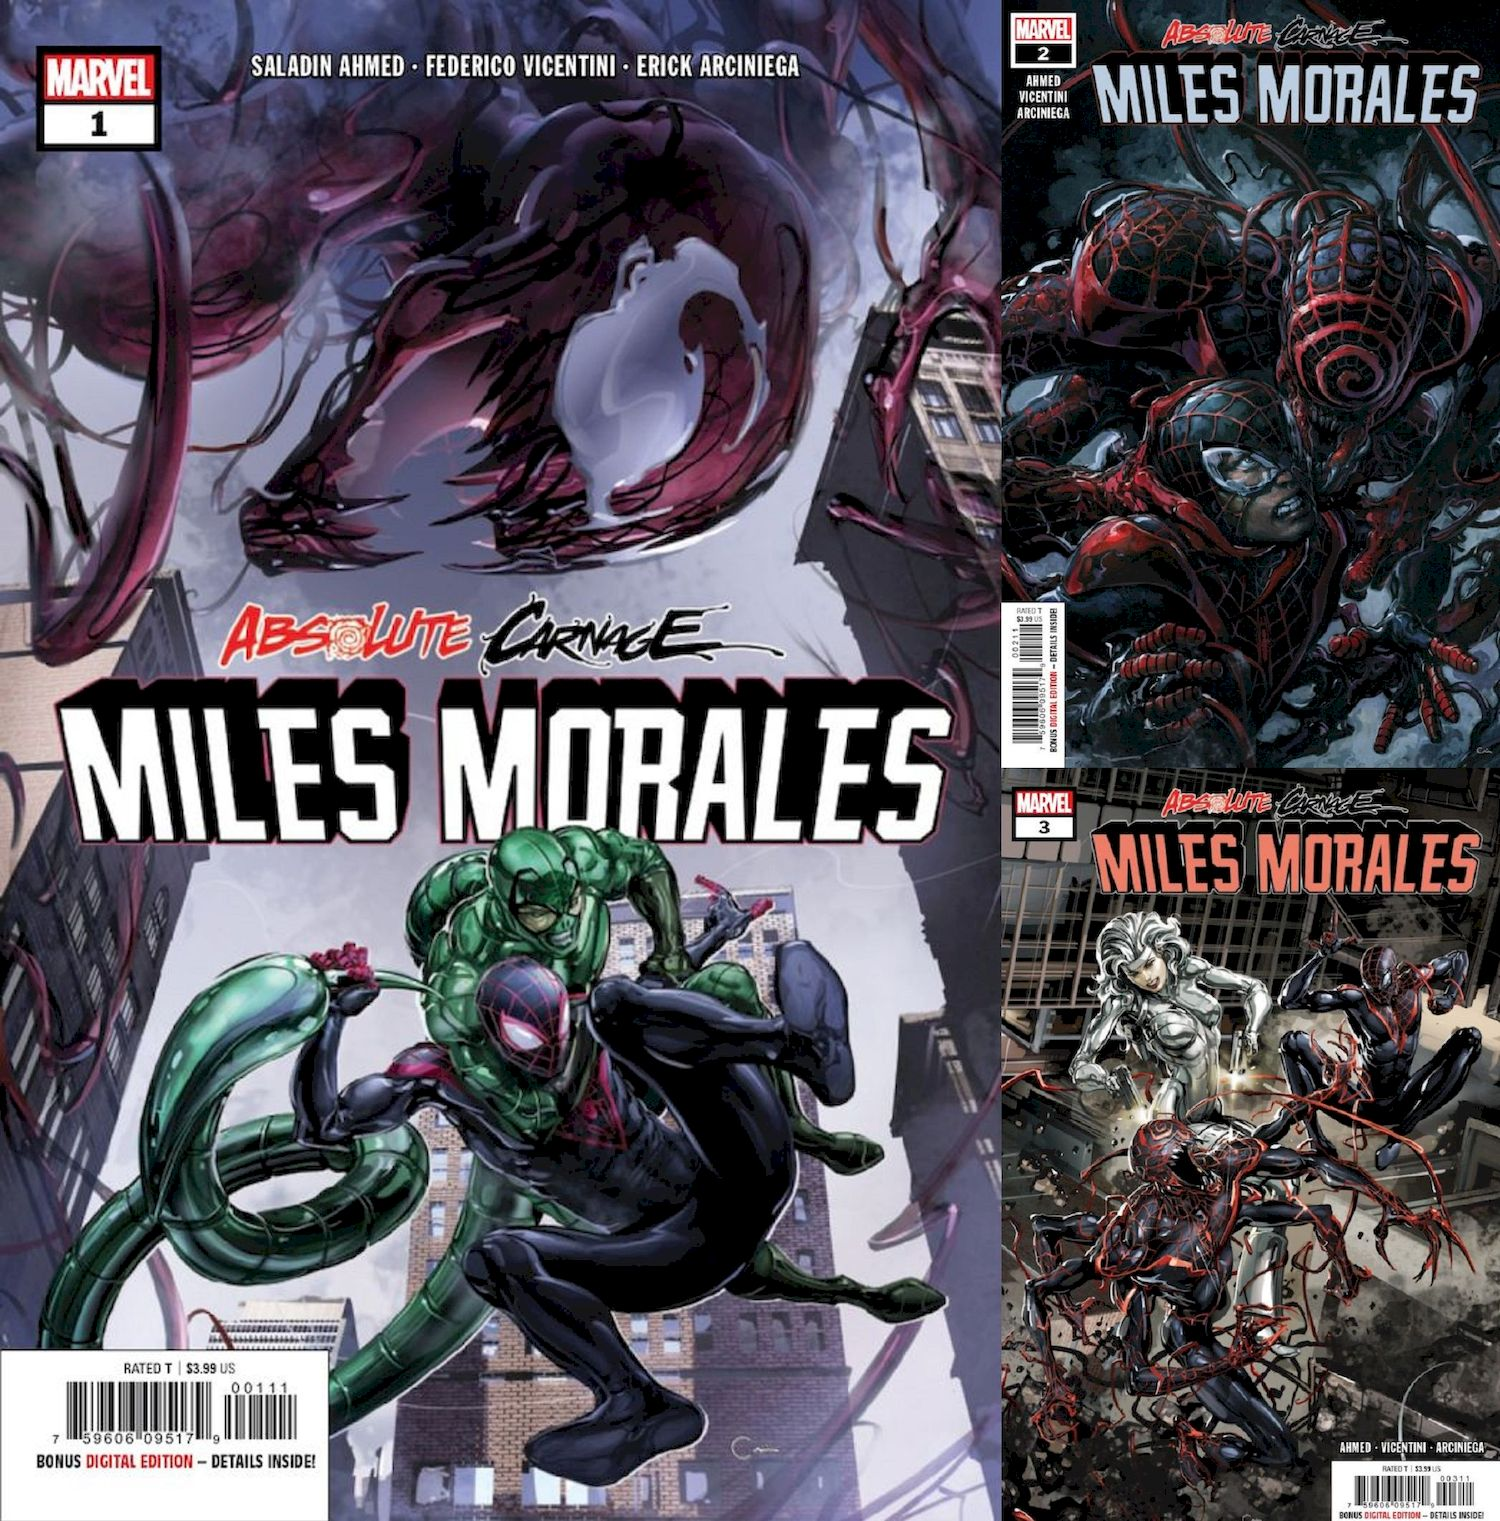 ABSOLUTE CARNAGE MILES MORALES #1 - #3 (OF 3) SET